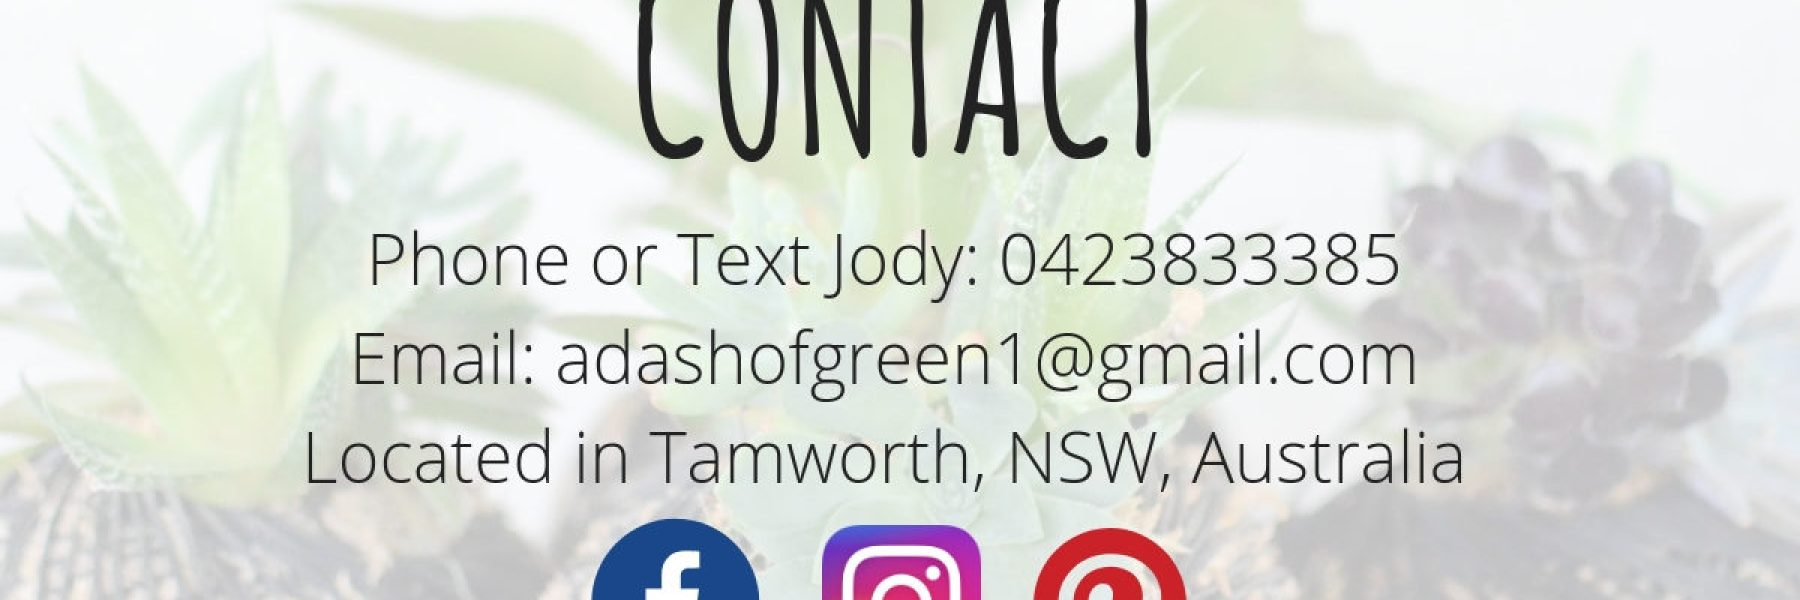 A Dash of Green contact, A Dash of Green phone number, a Dash of Green email address, a dash of green conact form